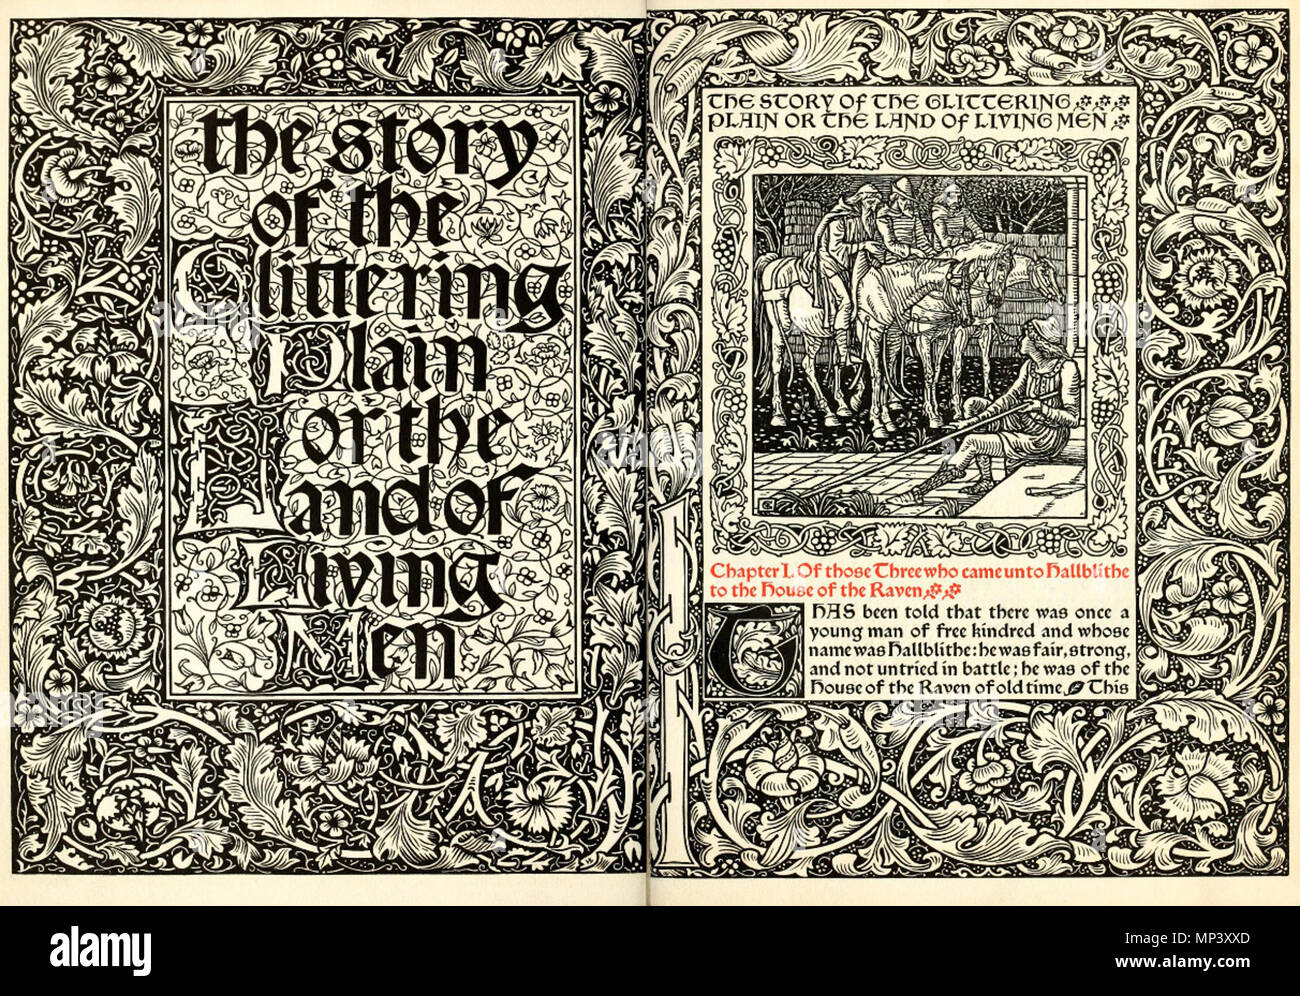 . English: Title-page of 'The story of the Glittering Plain' printed by Kelmscott Press in 1894 Русский: Титульный лист «Истории о сверкающей долине», напечатанной в «Келмскотт-пресс» в 1894 году . 1894.   William Morris  (1834–1896)       Alternative names William M. Morris  Description British painter, designer, architect and writer  Date of birth/death 24 March 1834 3 October 1896  Location of birth/death Walthamstow (Essex) London-Hammersmith  Work location Deutsch: Südengland English: Southern England  Authority control  : Q182589 VIAF: 22146194 ISNI: 0000 0001 2123 5747 ULAN: 500030629 L Stock Photo